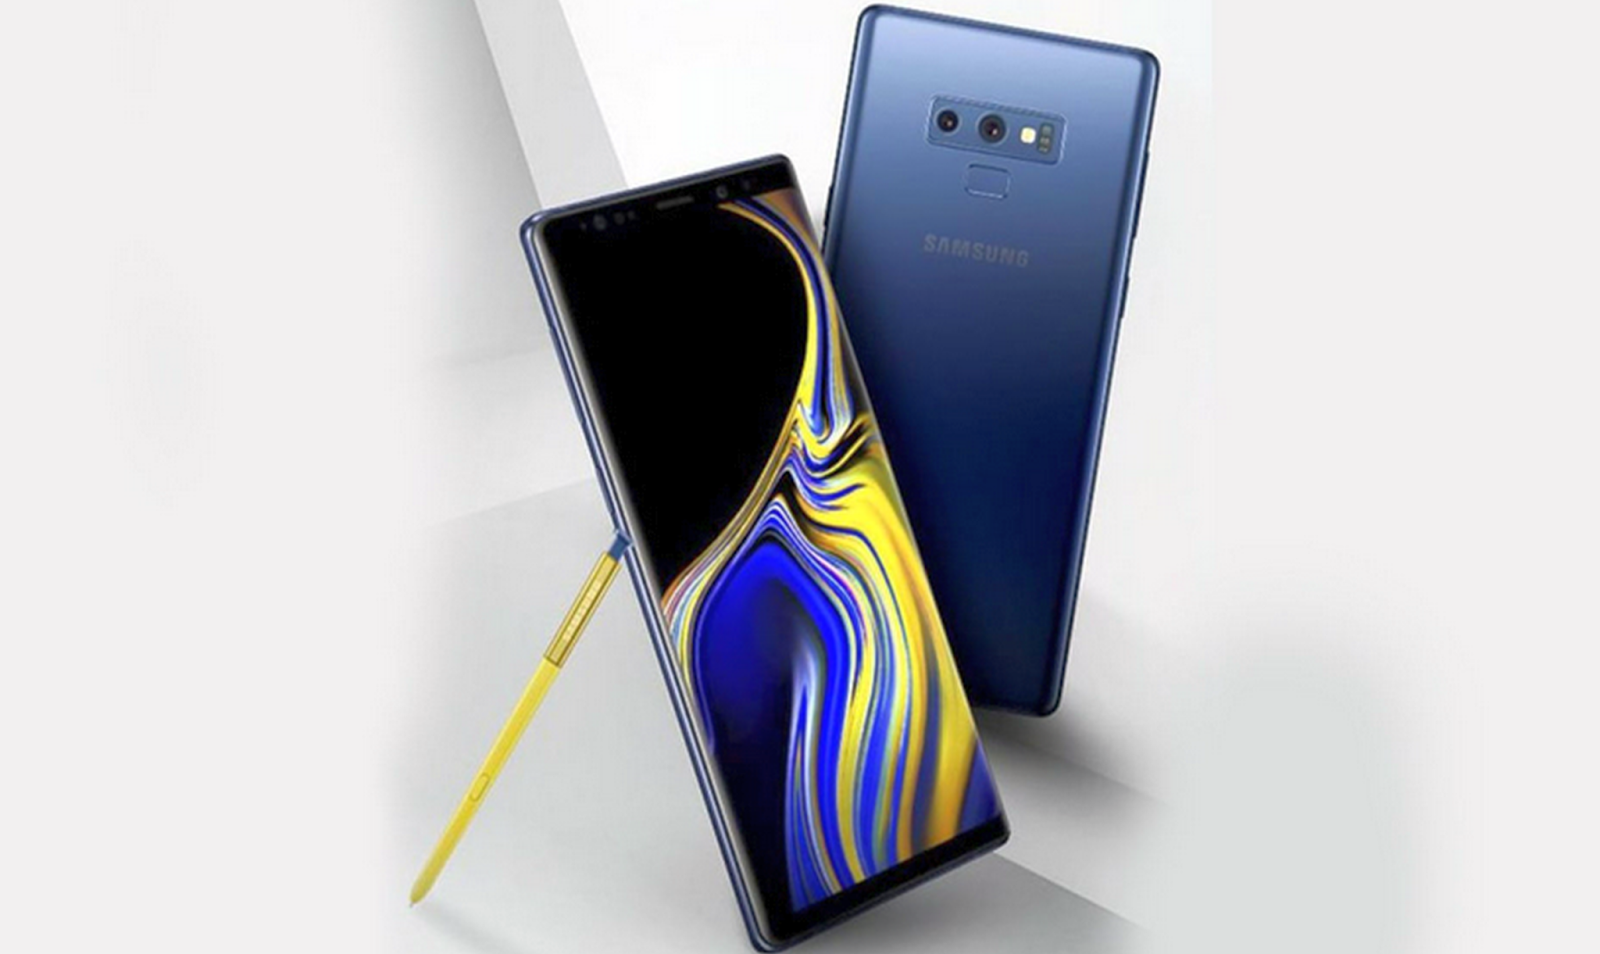 9 Image Galaxy Note 9 Wallpaper